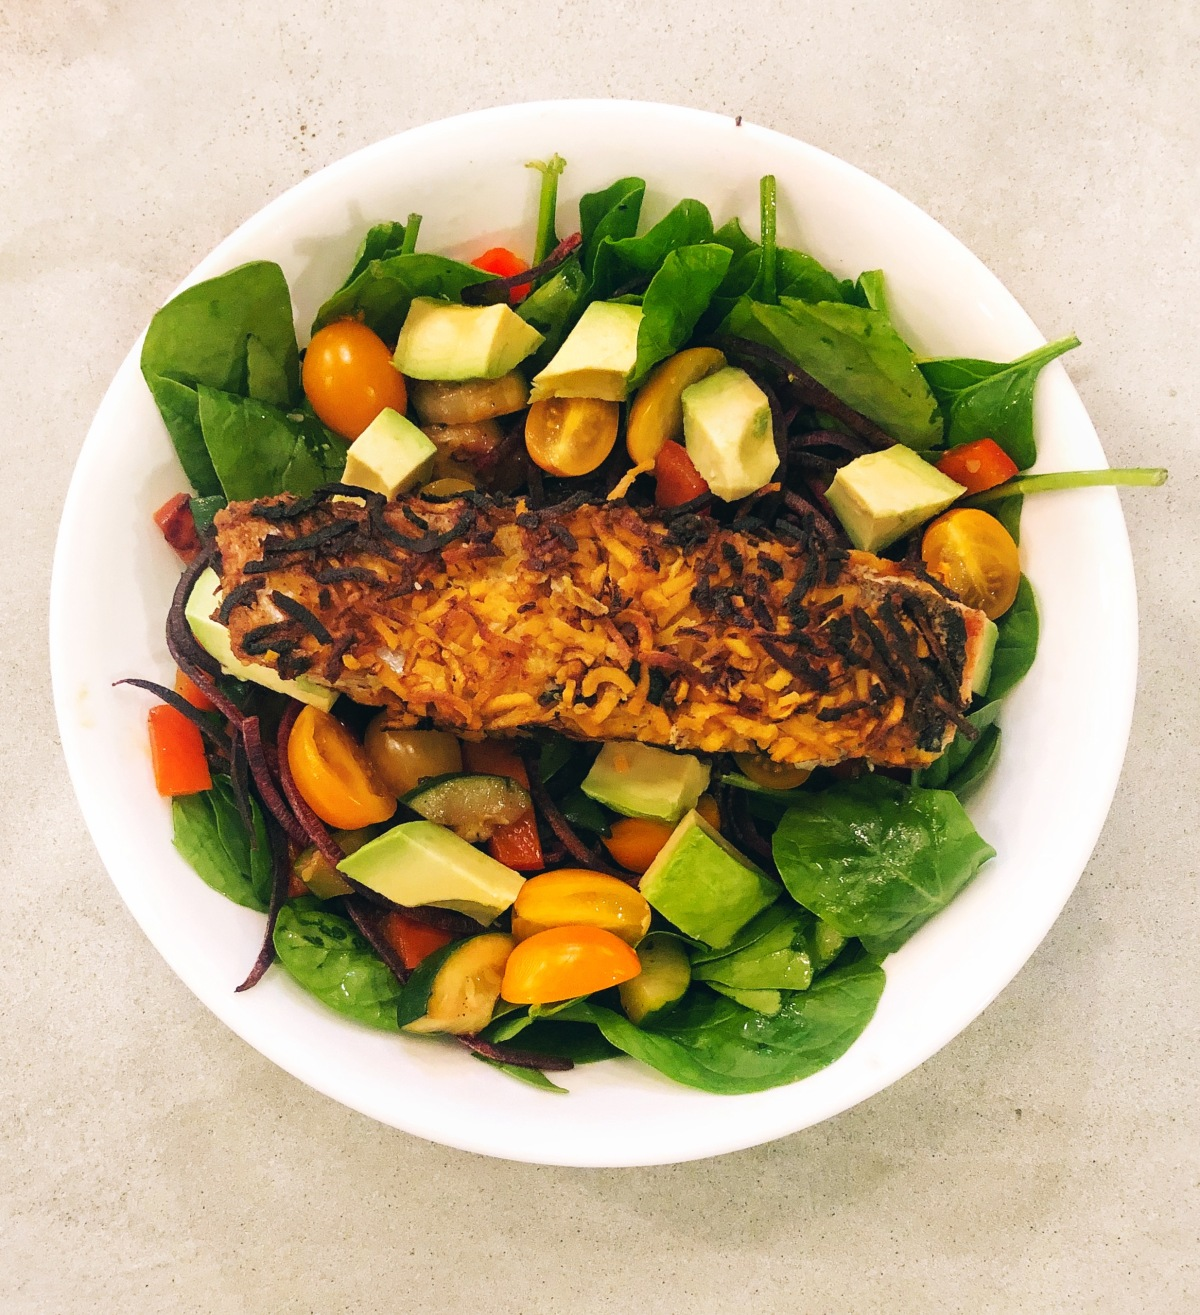 Sweet Potato Crusted Salmon with a Veggie-Packed Salad